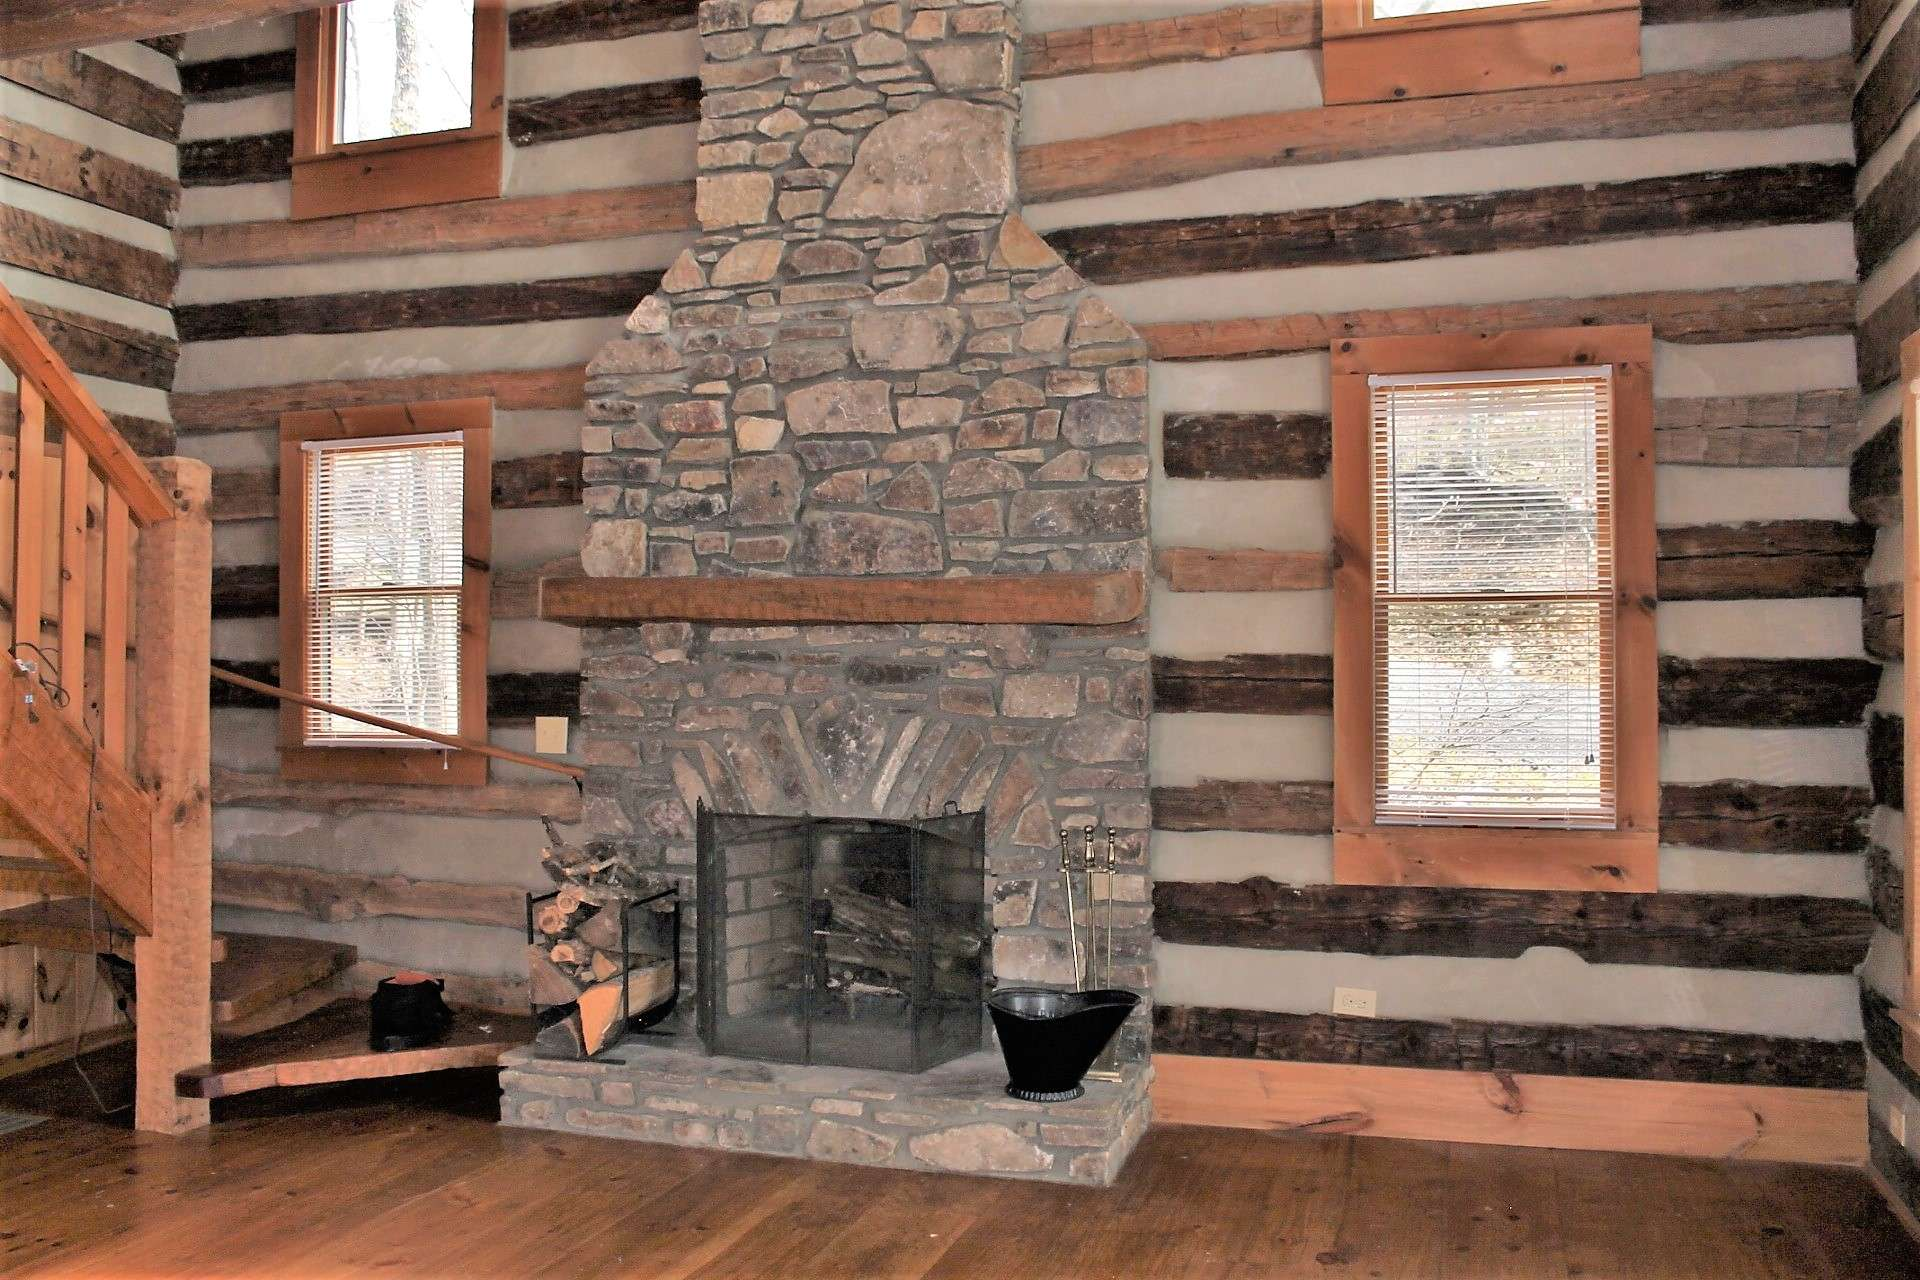 Four windows flank the fireplace to bring in ample light.